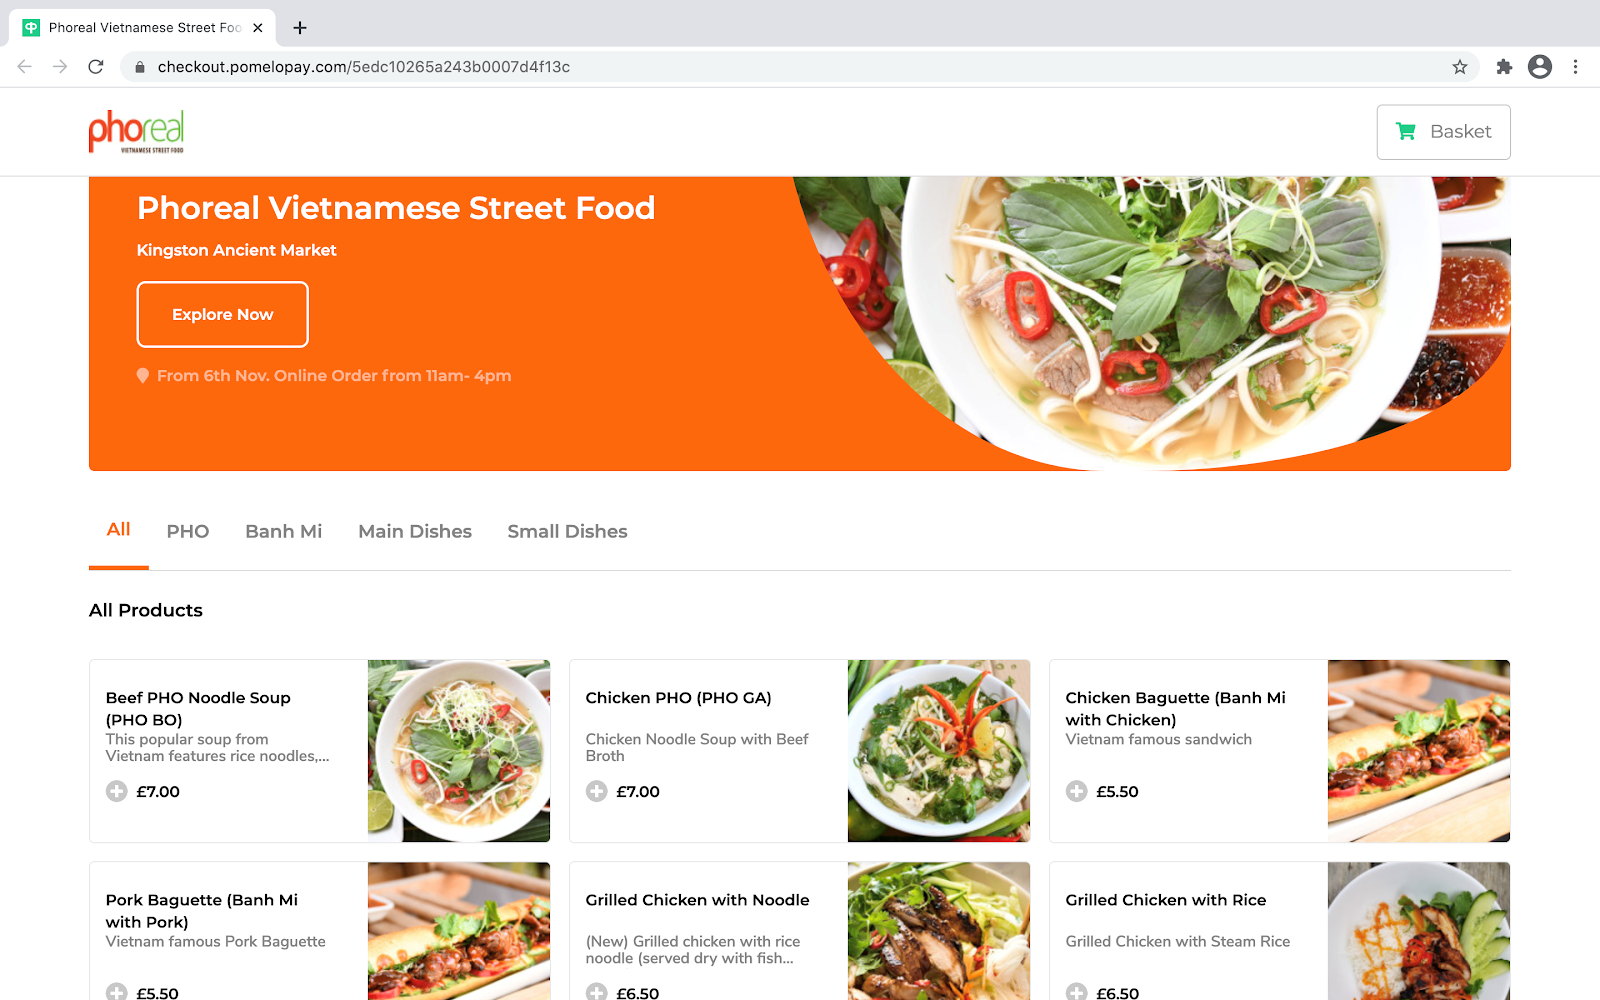 pho real online ordering system